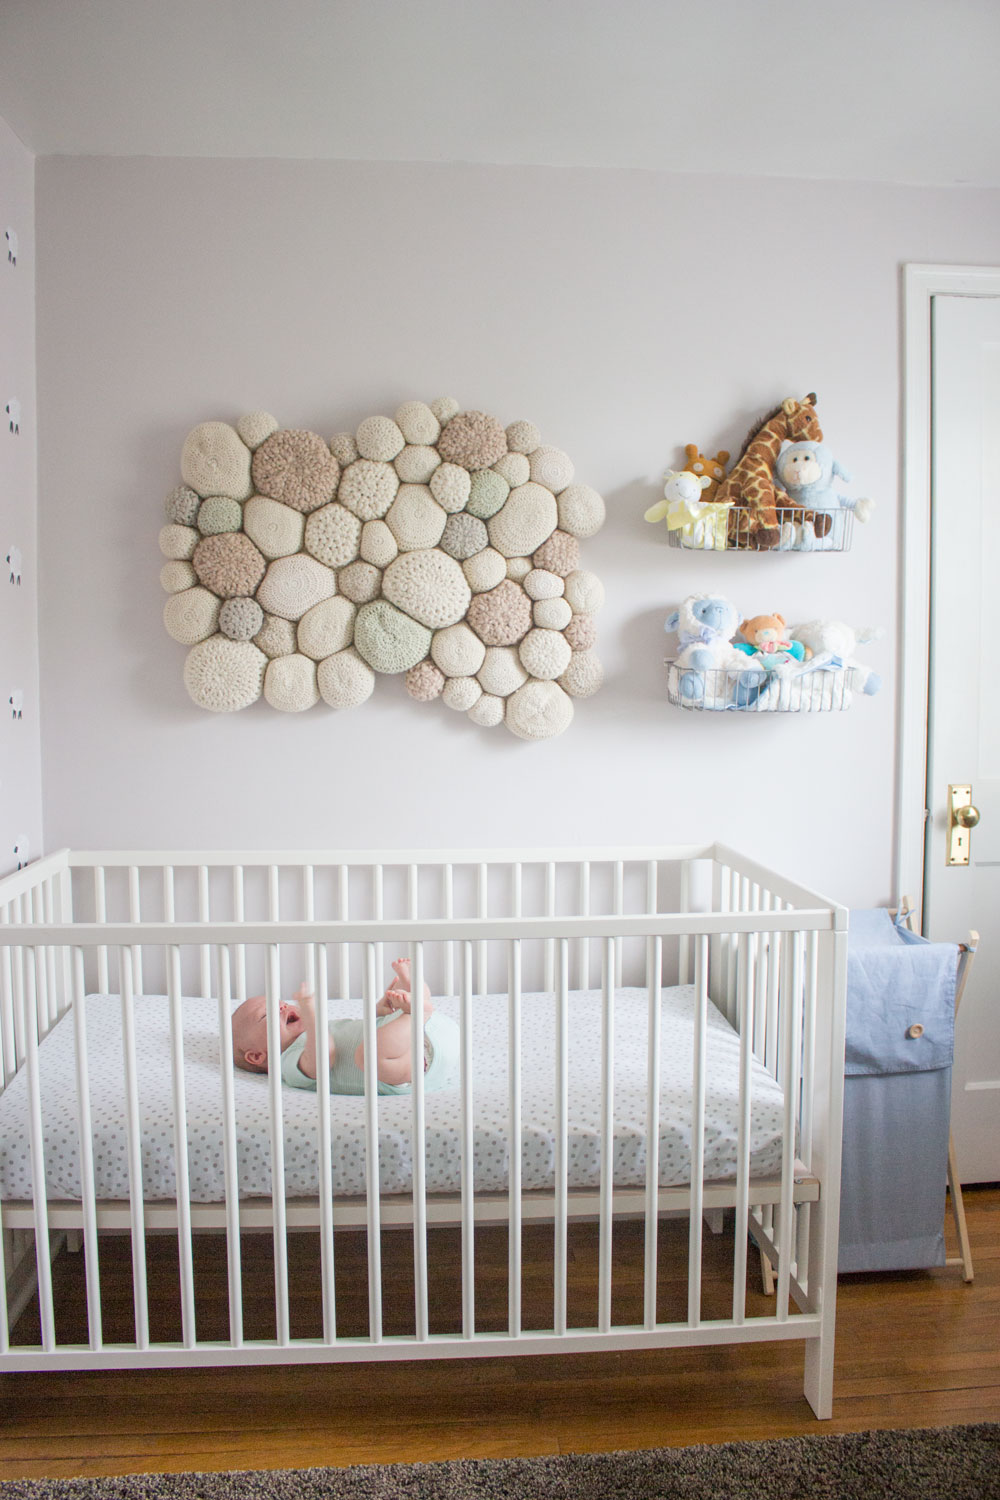 Baby Jack S Nursery Shoot Ernie And Irene Fiber Art